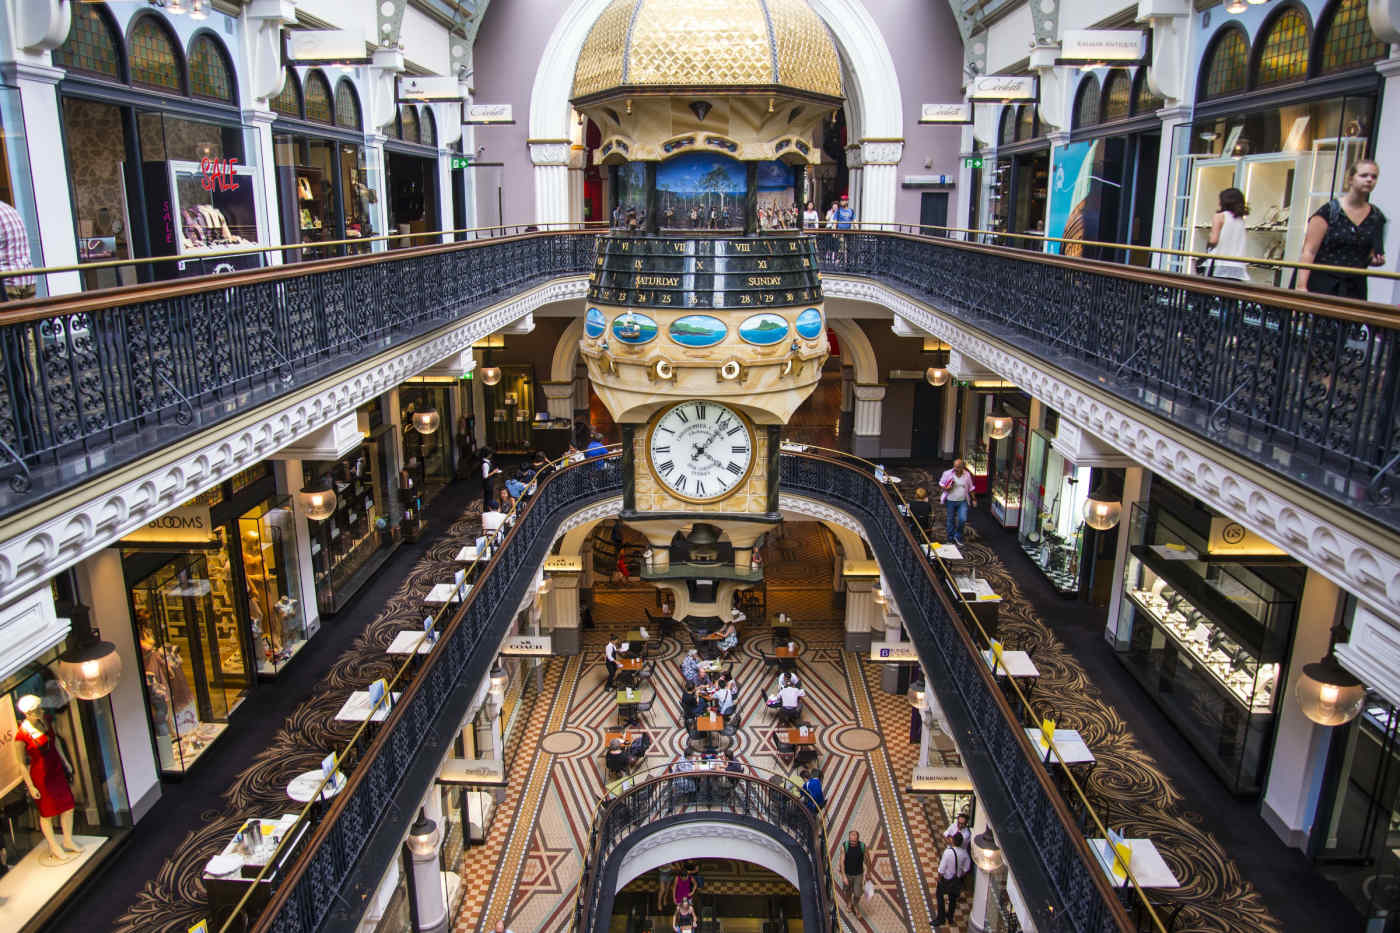 Queen Victoria Building in Sydney, Australia